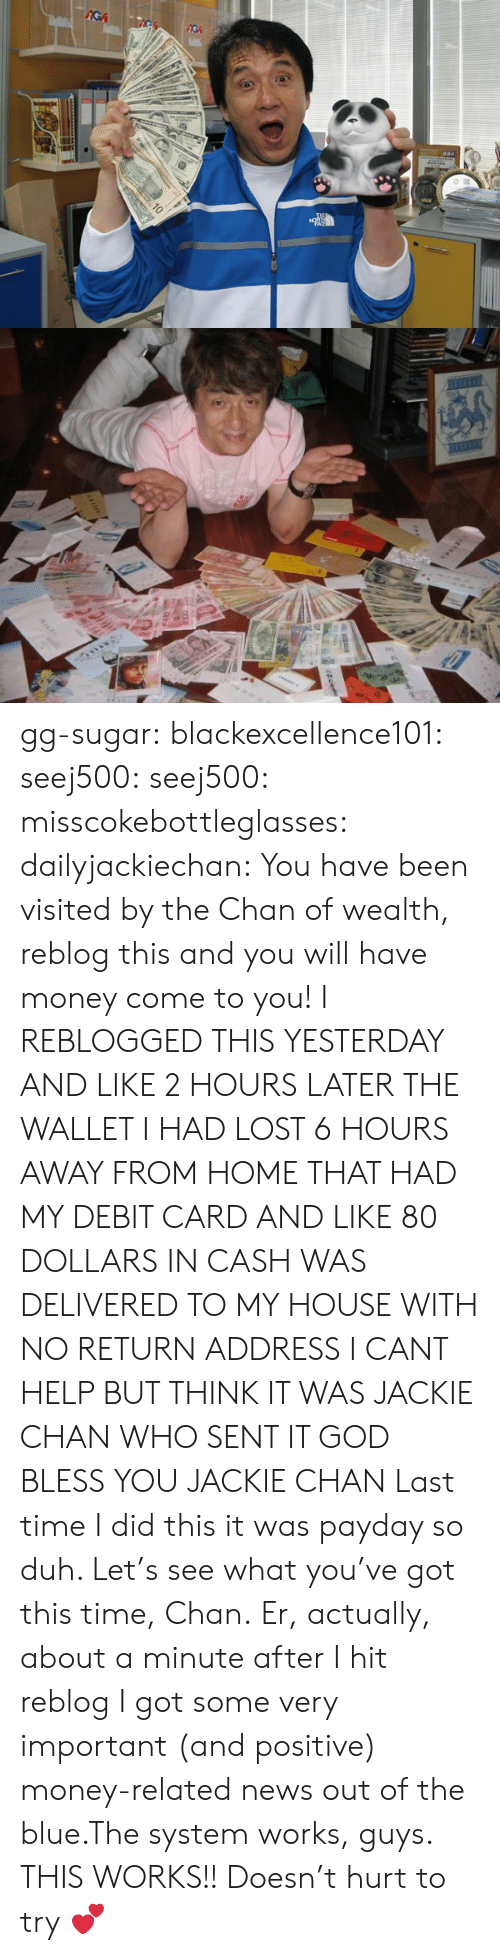 Gg, God, and Jackie Chan: gg-sugar: blackexcellence101:  seej500:  seej500:  misscokebottleglasses:  dailyjackiechan:  You have been visited by the Chan of wealth, reblog this and you will have money come to you!  I REBLOGGED THIS YESTERDAY AND LIKE 2 HOURS LATER THE WALLET I HAD LOST 6 HOURS AWAY FROM HOME THAT HAD MY DEBIT CARD AND LIKE 80 DOLLARS IN CASH WAS DELIVERED TO MY HOUSE WITH NO RETURN ADDRESS I CANT HELP BUT THINK IT WAS JACKIE CHAN WHO SENT IT GOD BLESS YOU JACKIE CHAN  Last time I did this it was payday so duh. Let's see what you've got this time, Chan.  Er, actually, about a minute after I hit reblog I got some very important (and positive) money-related news out of the blue.The system works, guys.  THIS WORKS!!   Doesn't hurt to try 💕